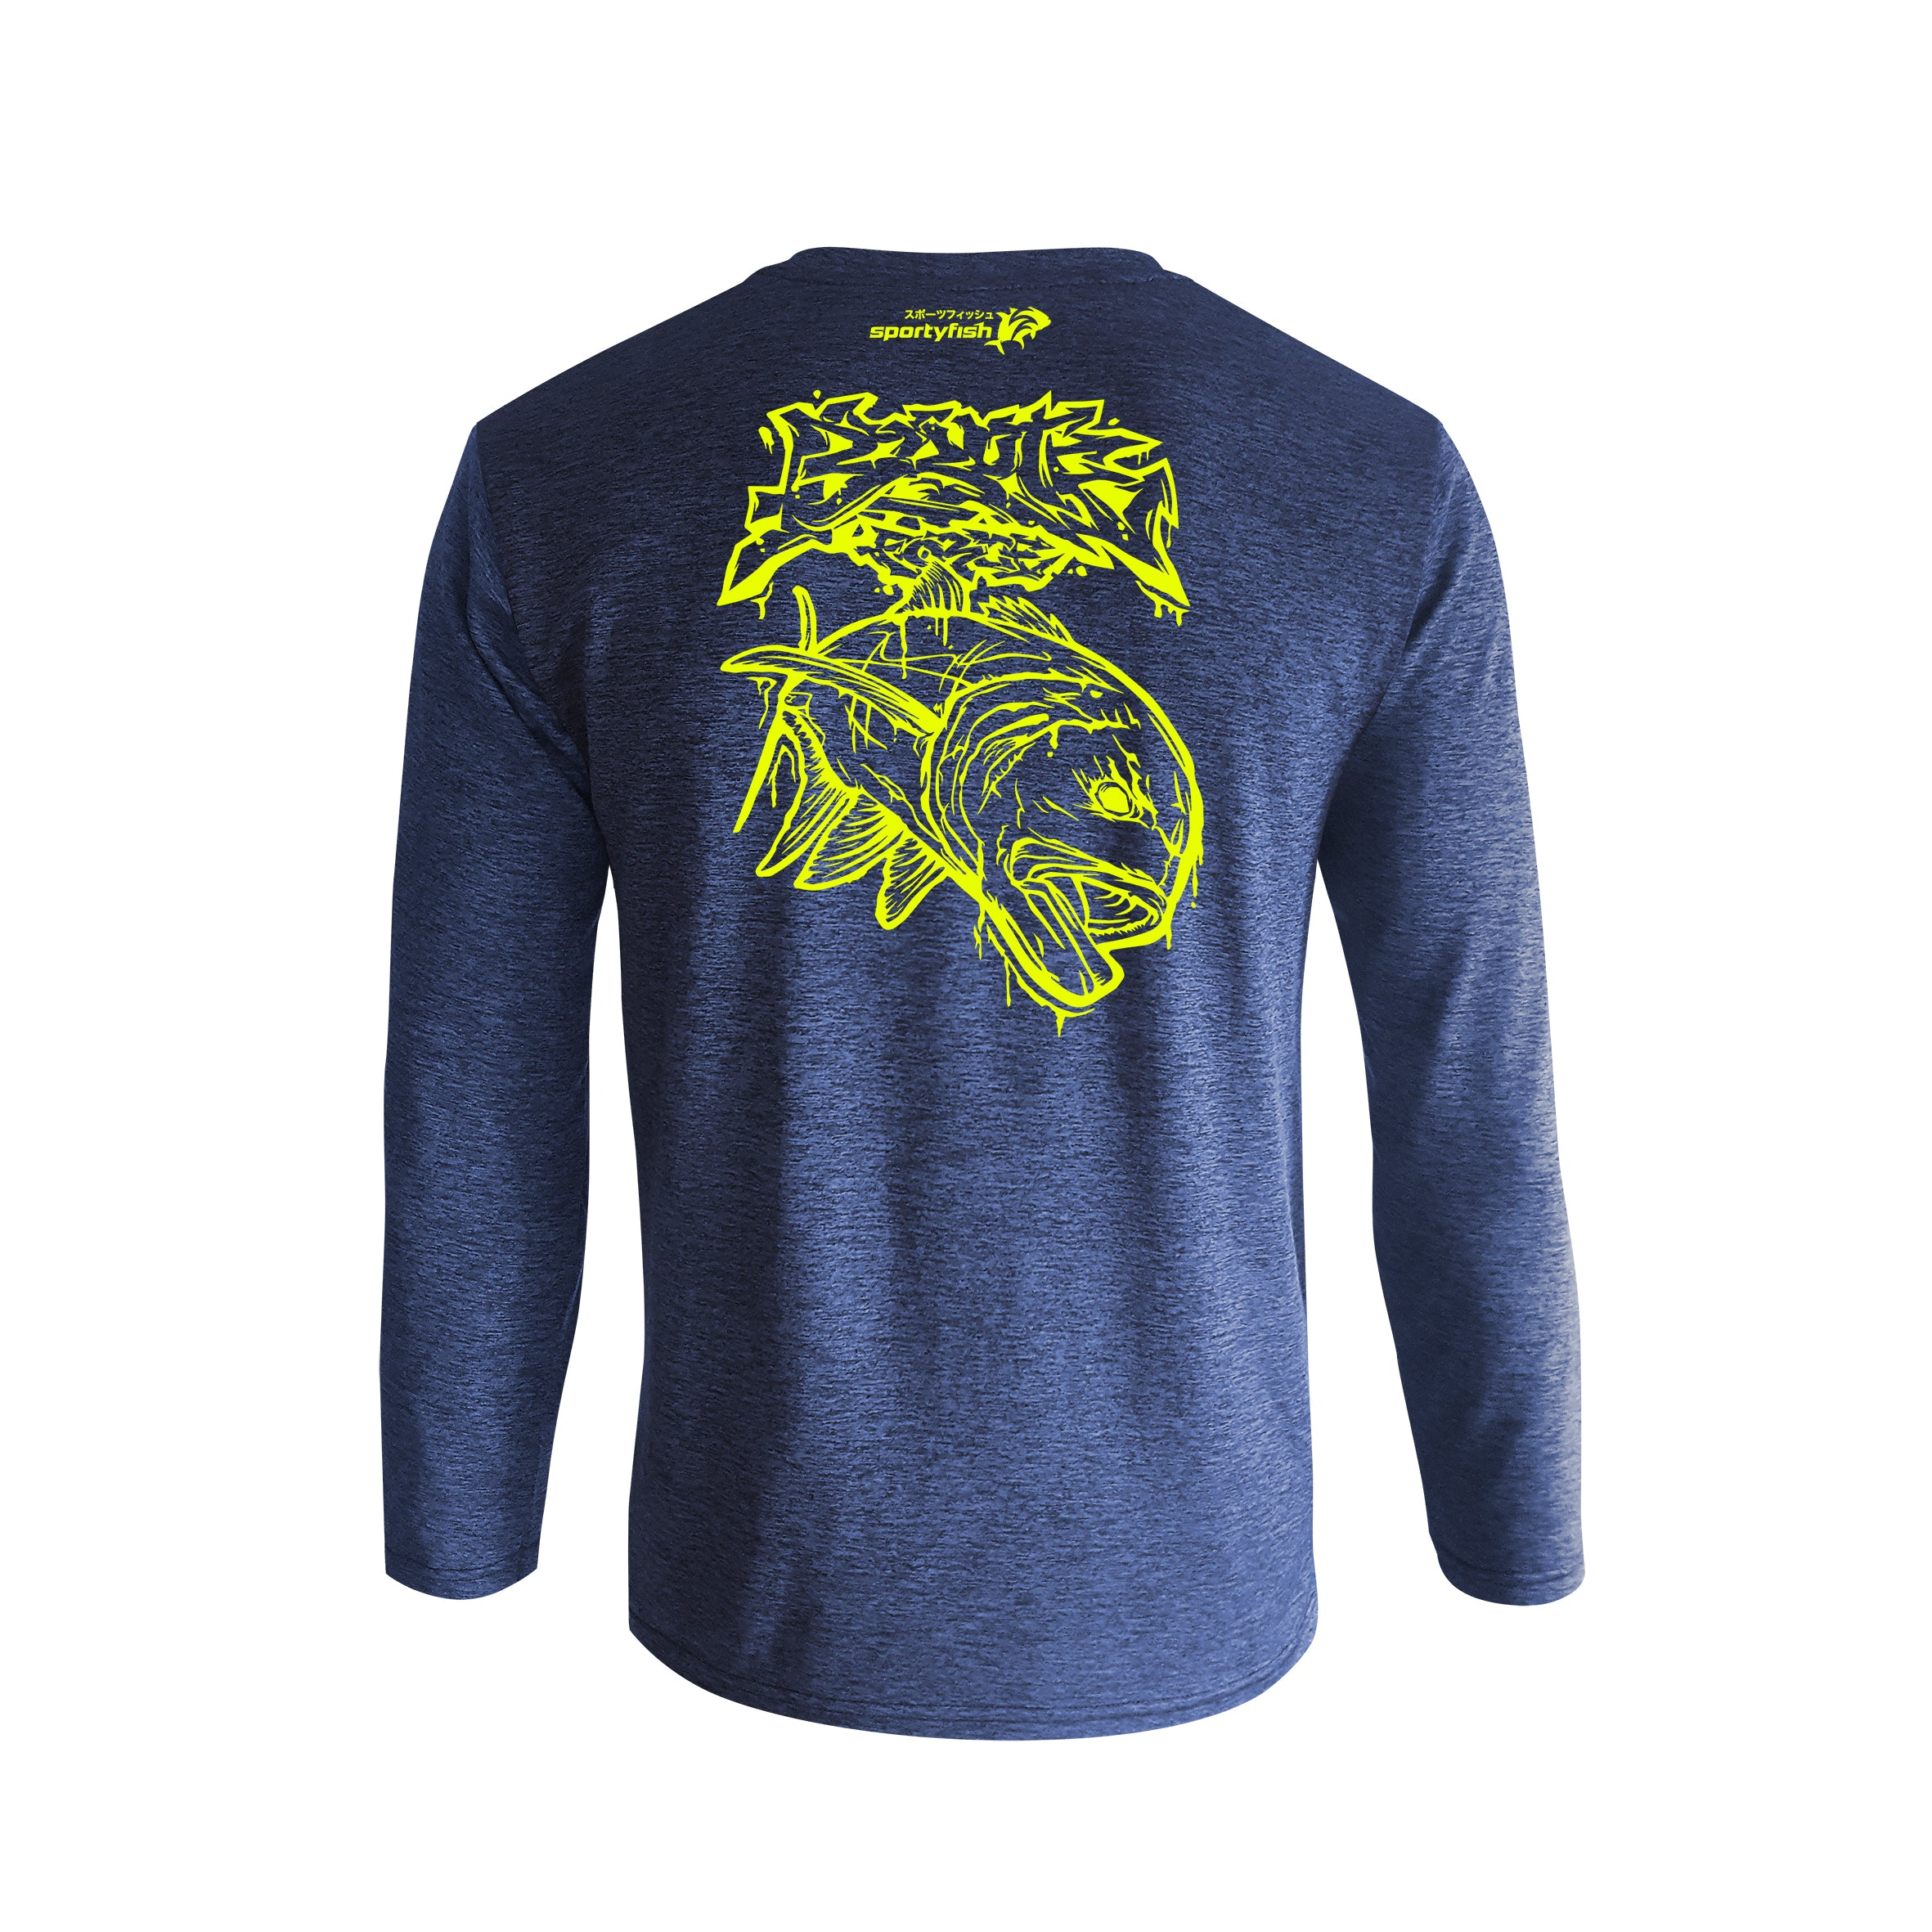 Wildstyle Graffiti Series Blue Long-sleeves T-shirt(back view)Neon Yellow: Giant Trevally